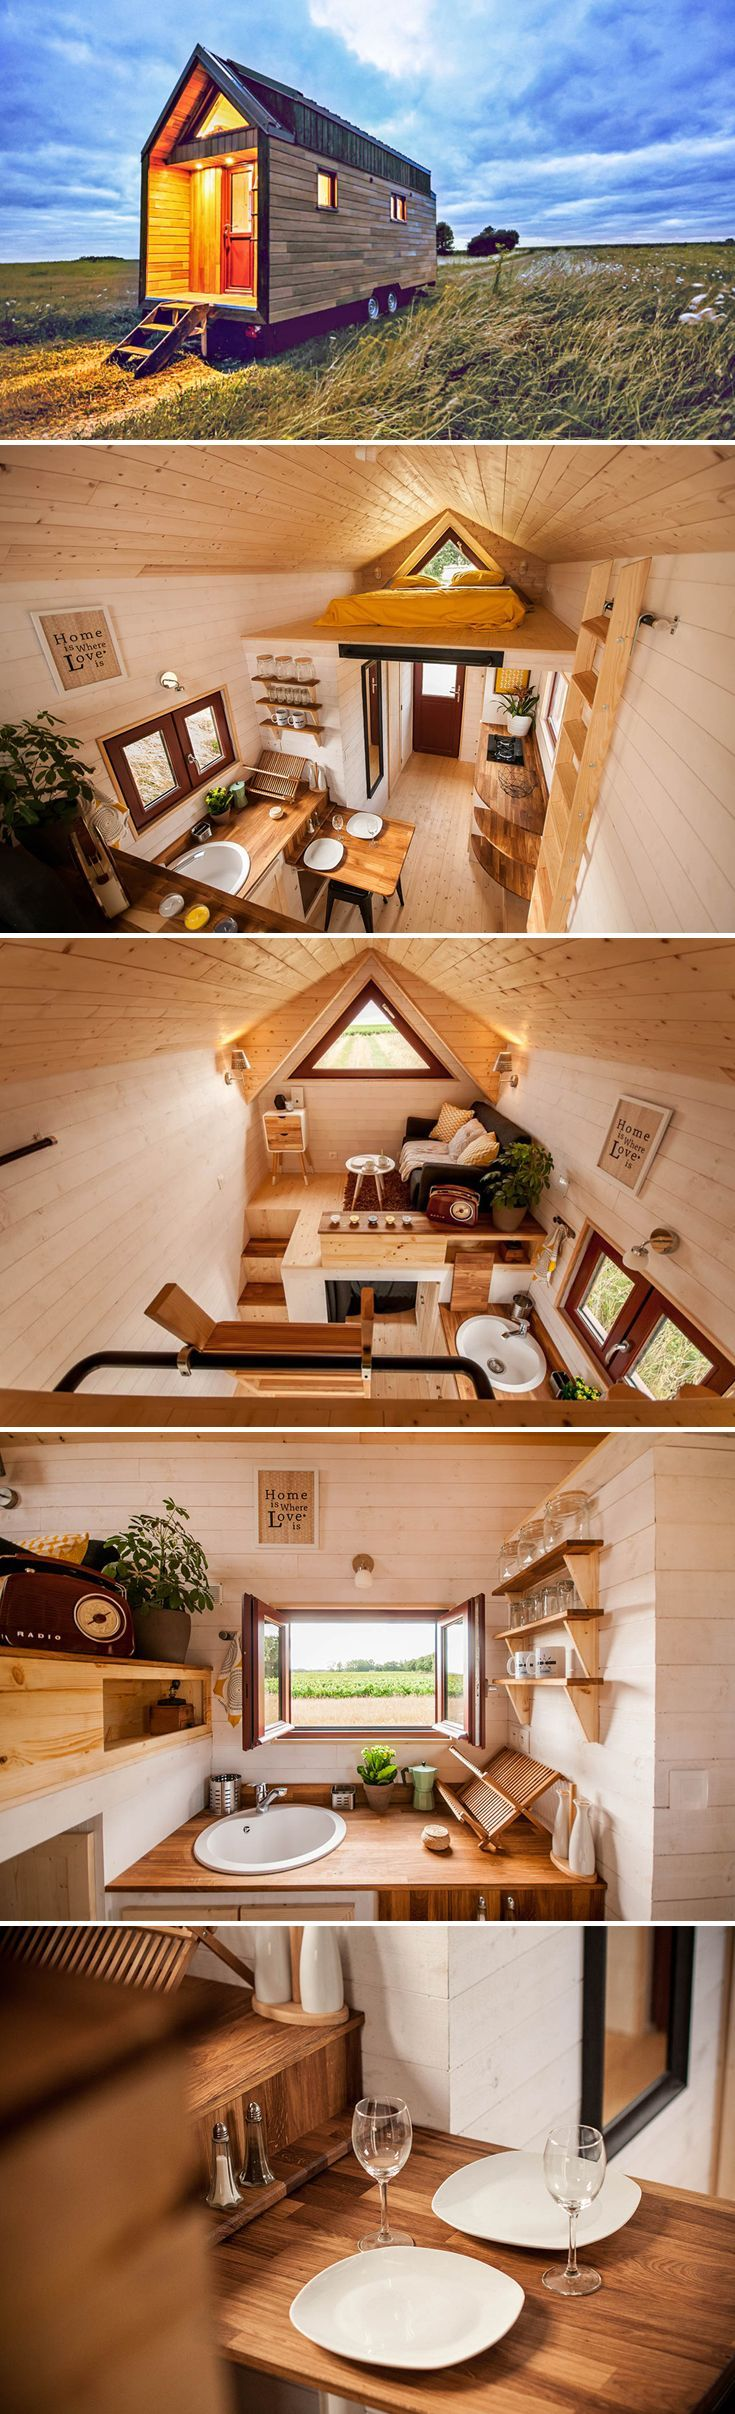 Odyssee by Baluchon #tinyhomes